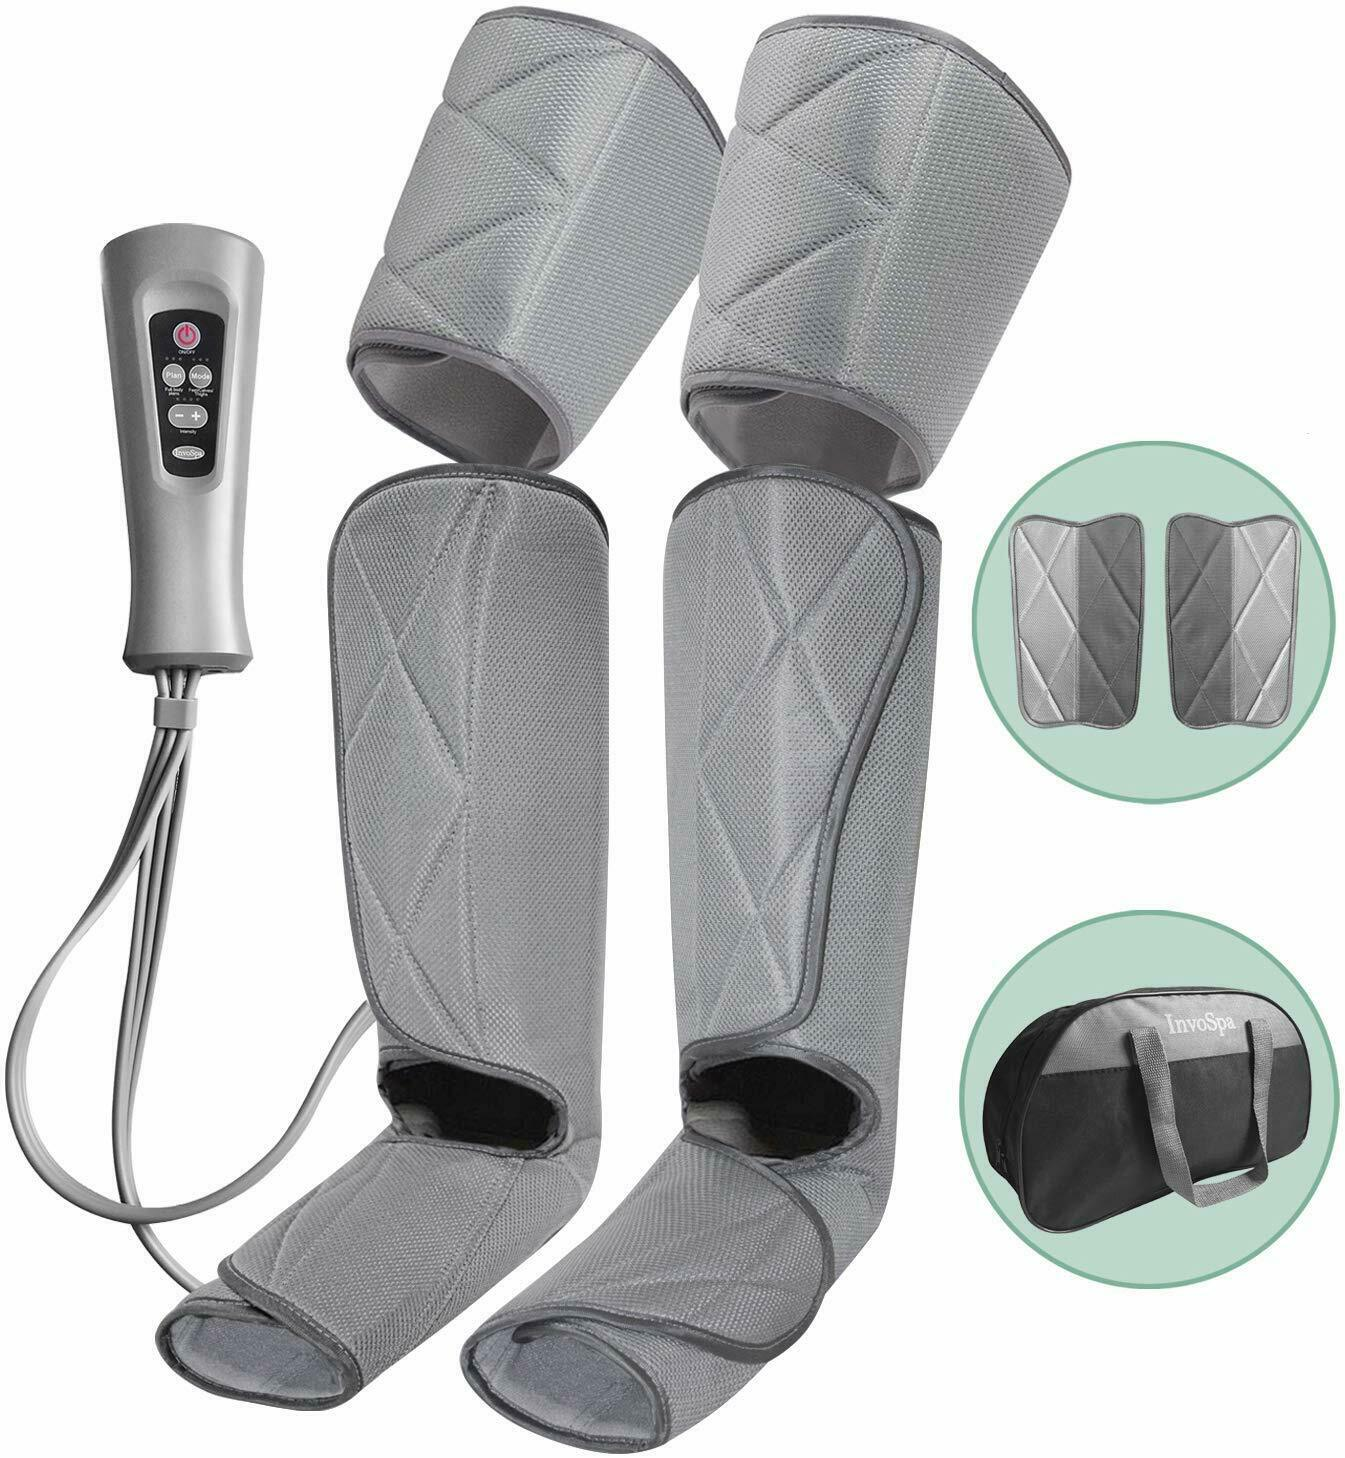 Leg, Foot, Calf Massager for Circulation With Remote Easy Ho